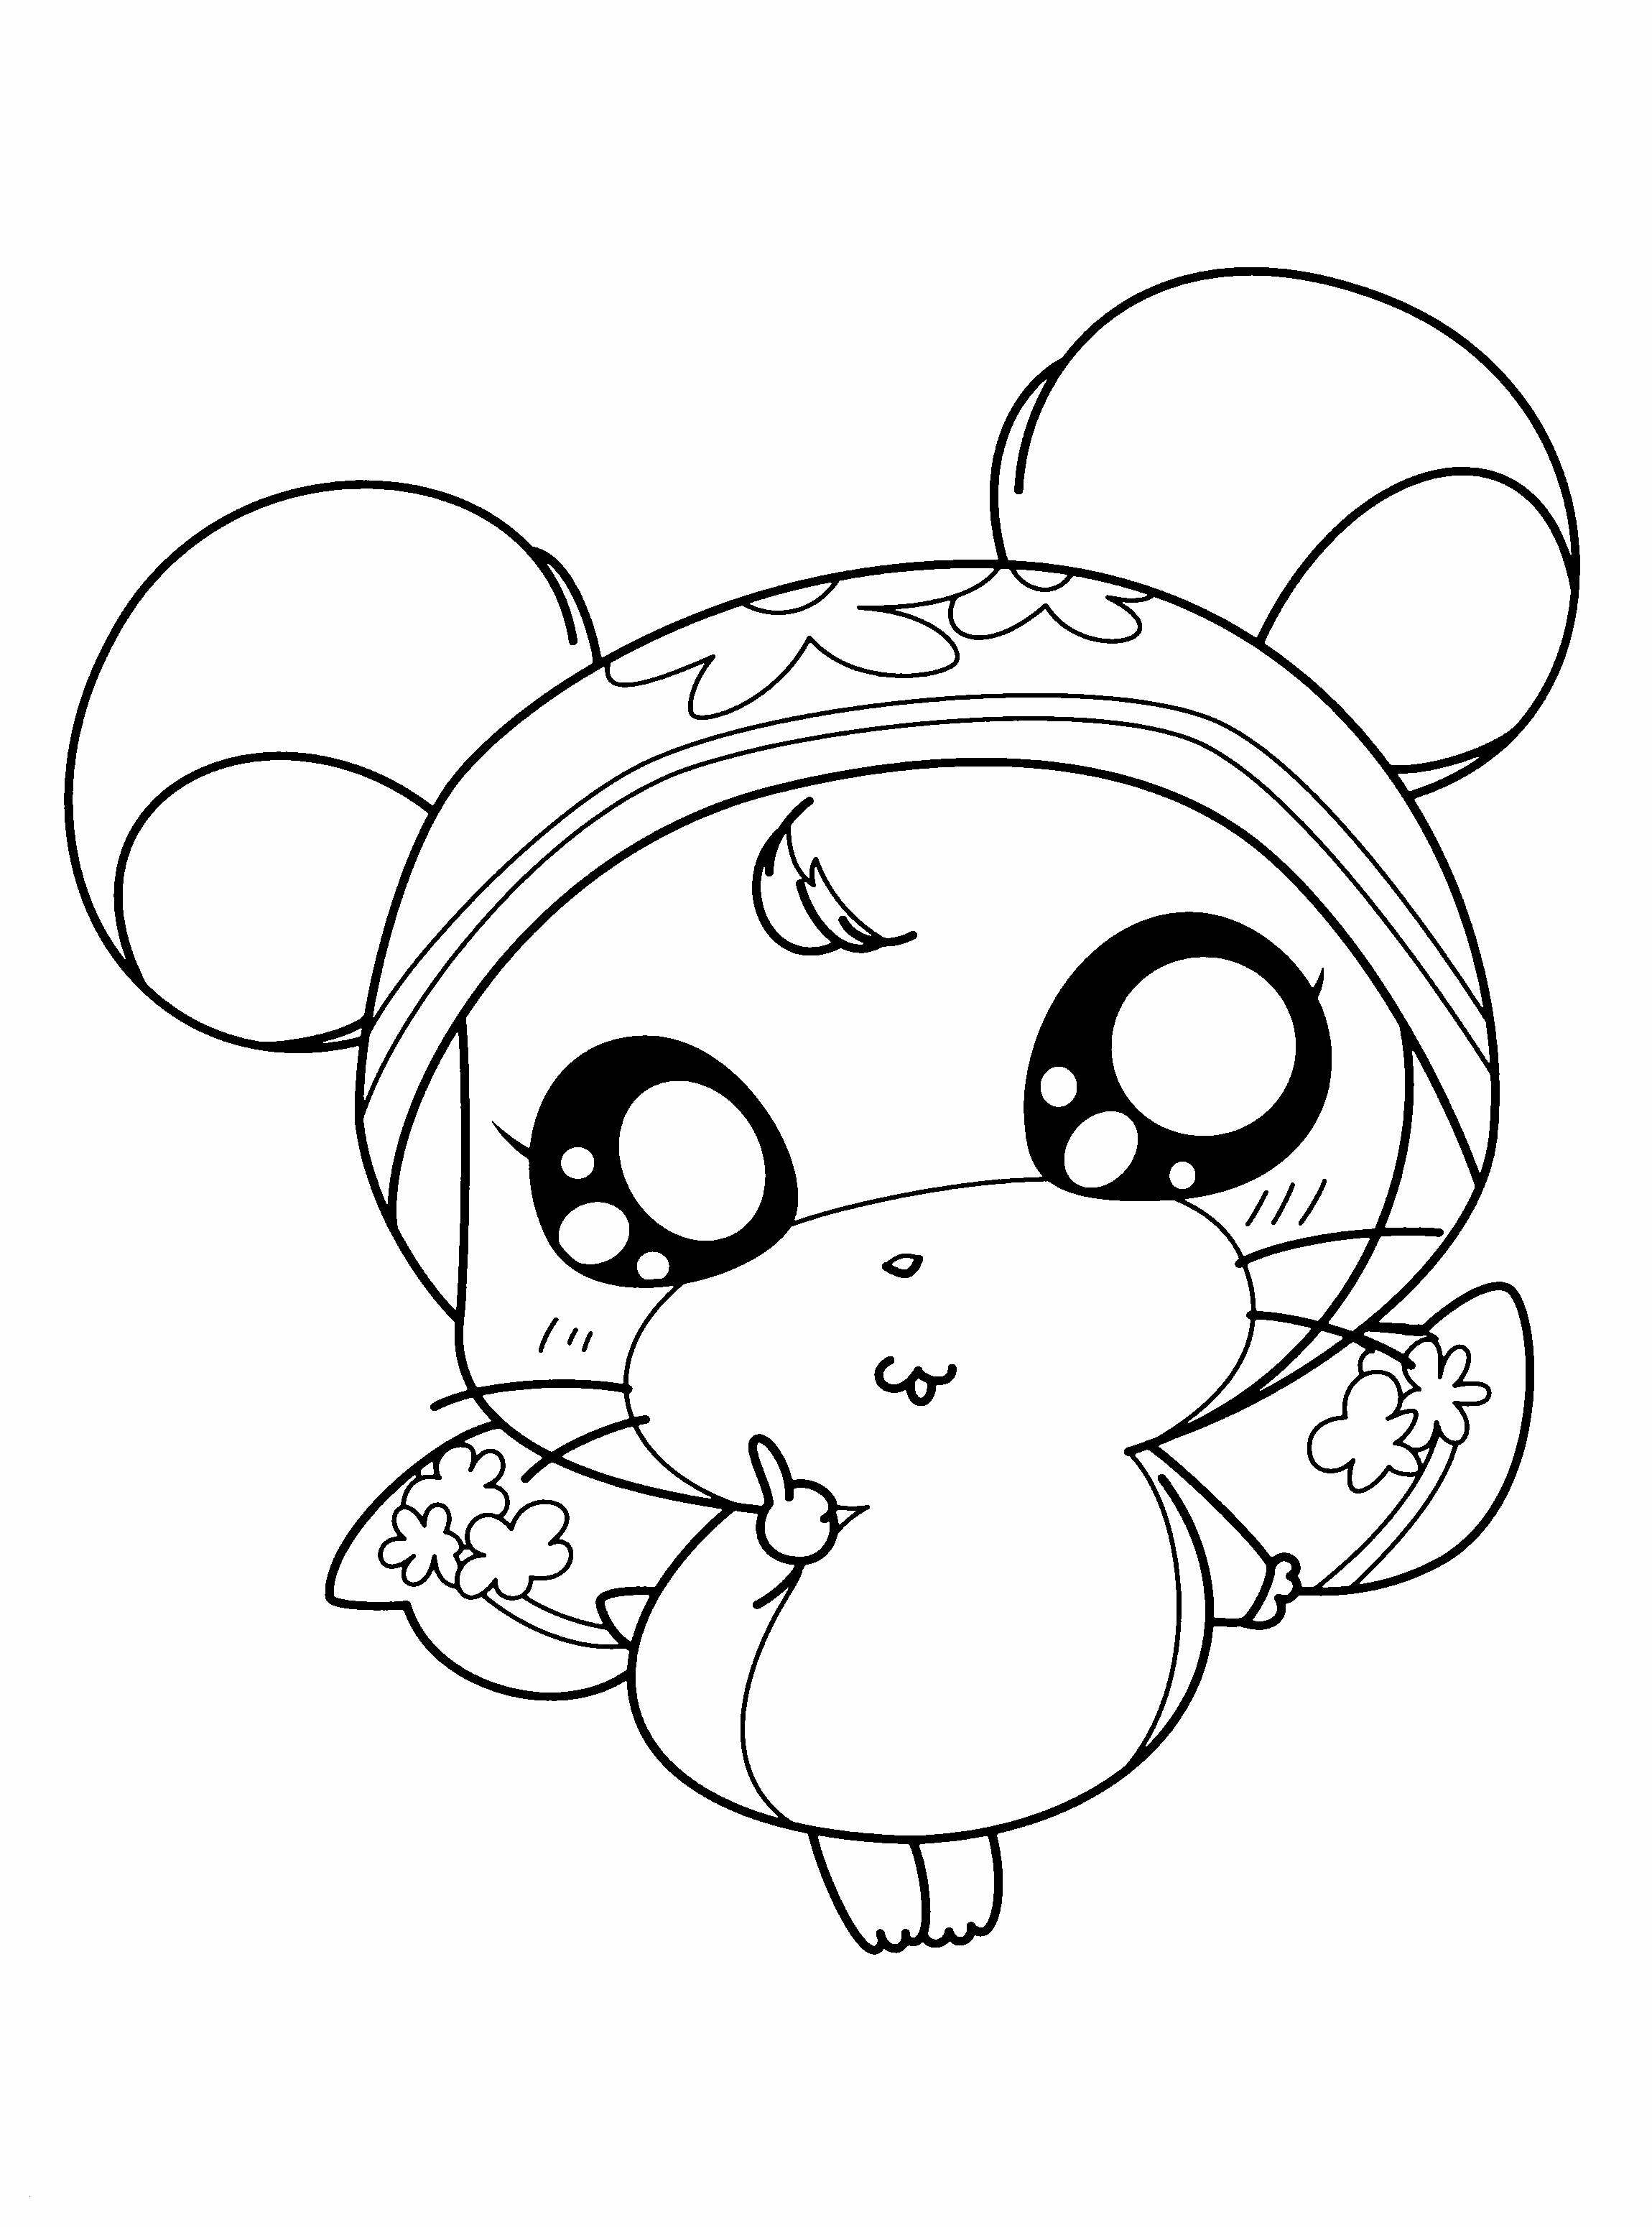 Gumball Coloring Pages Gallery